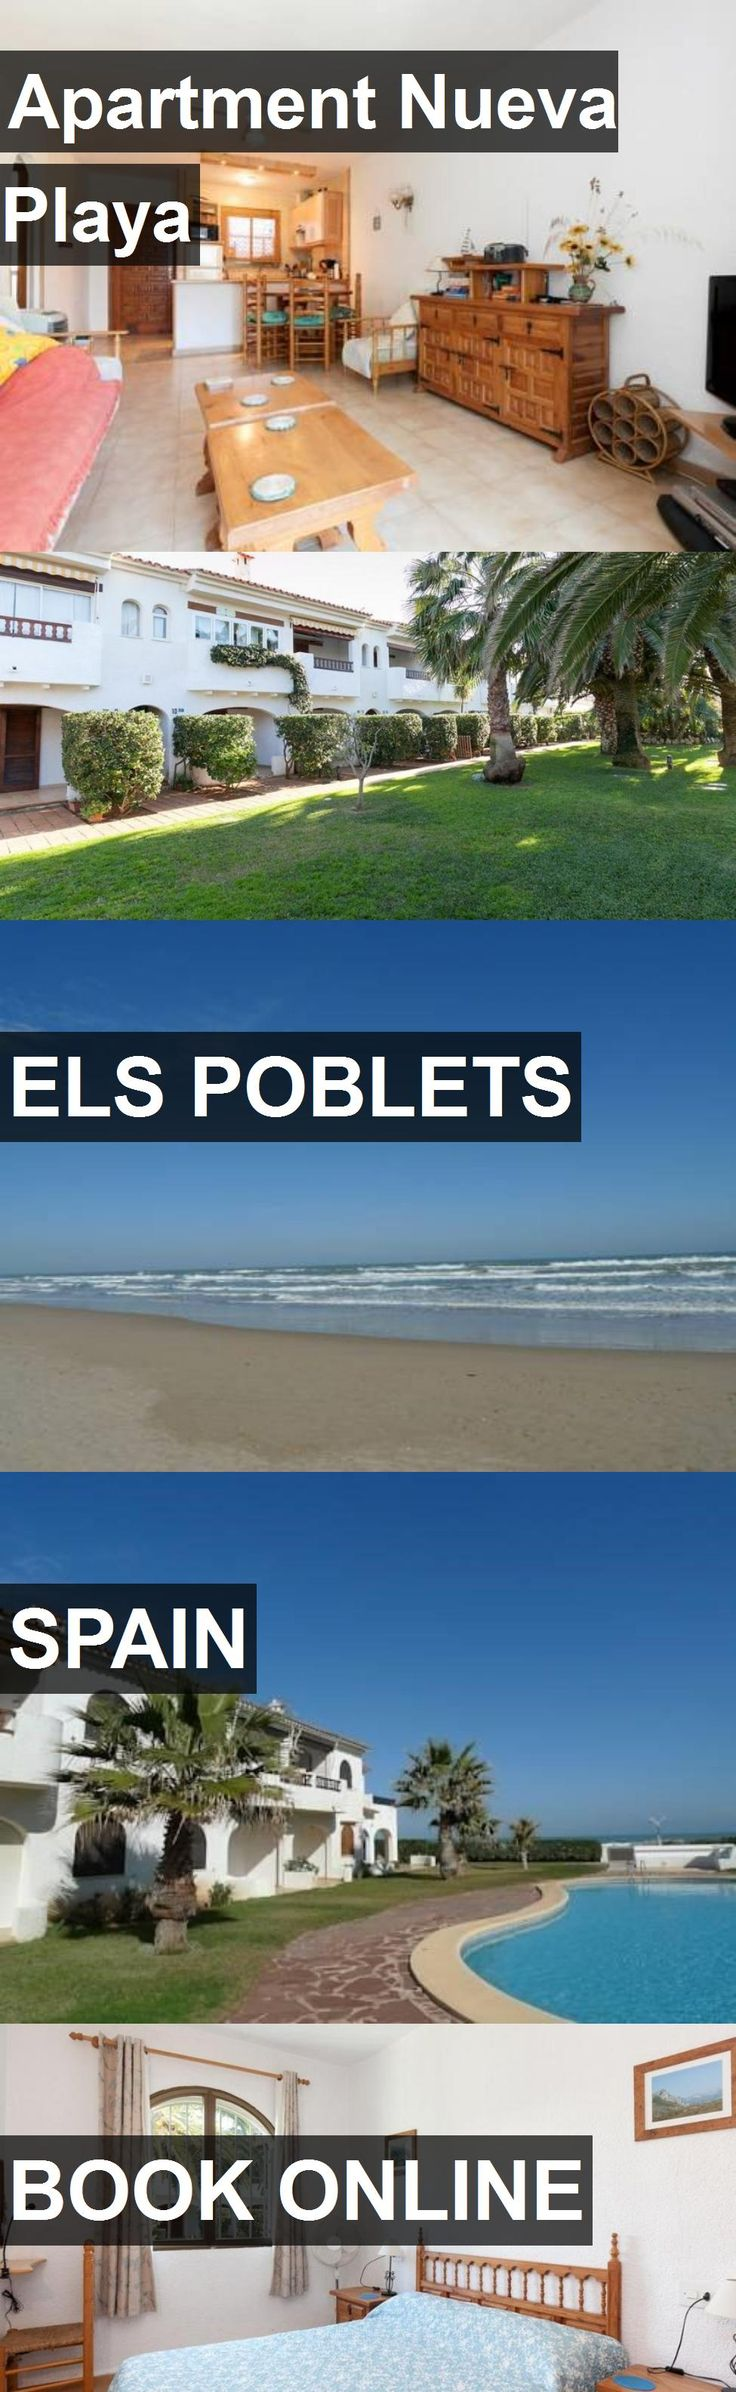 Apartment Nueva Playa in Els Poblets, Spain. For more information, photos, reviews and best prices please follow the link. #Spain #ElsPoblets #travel #vacation #apartment